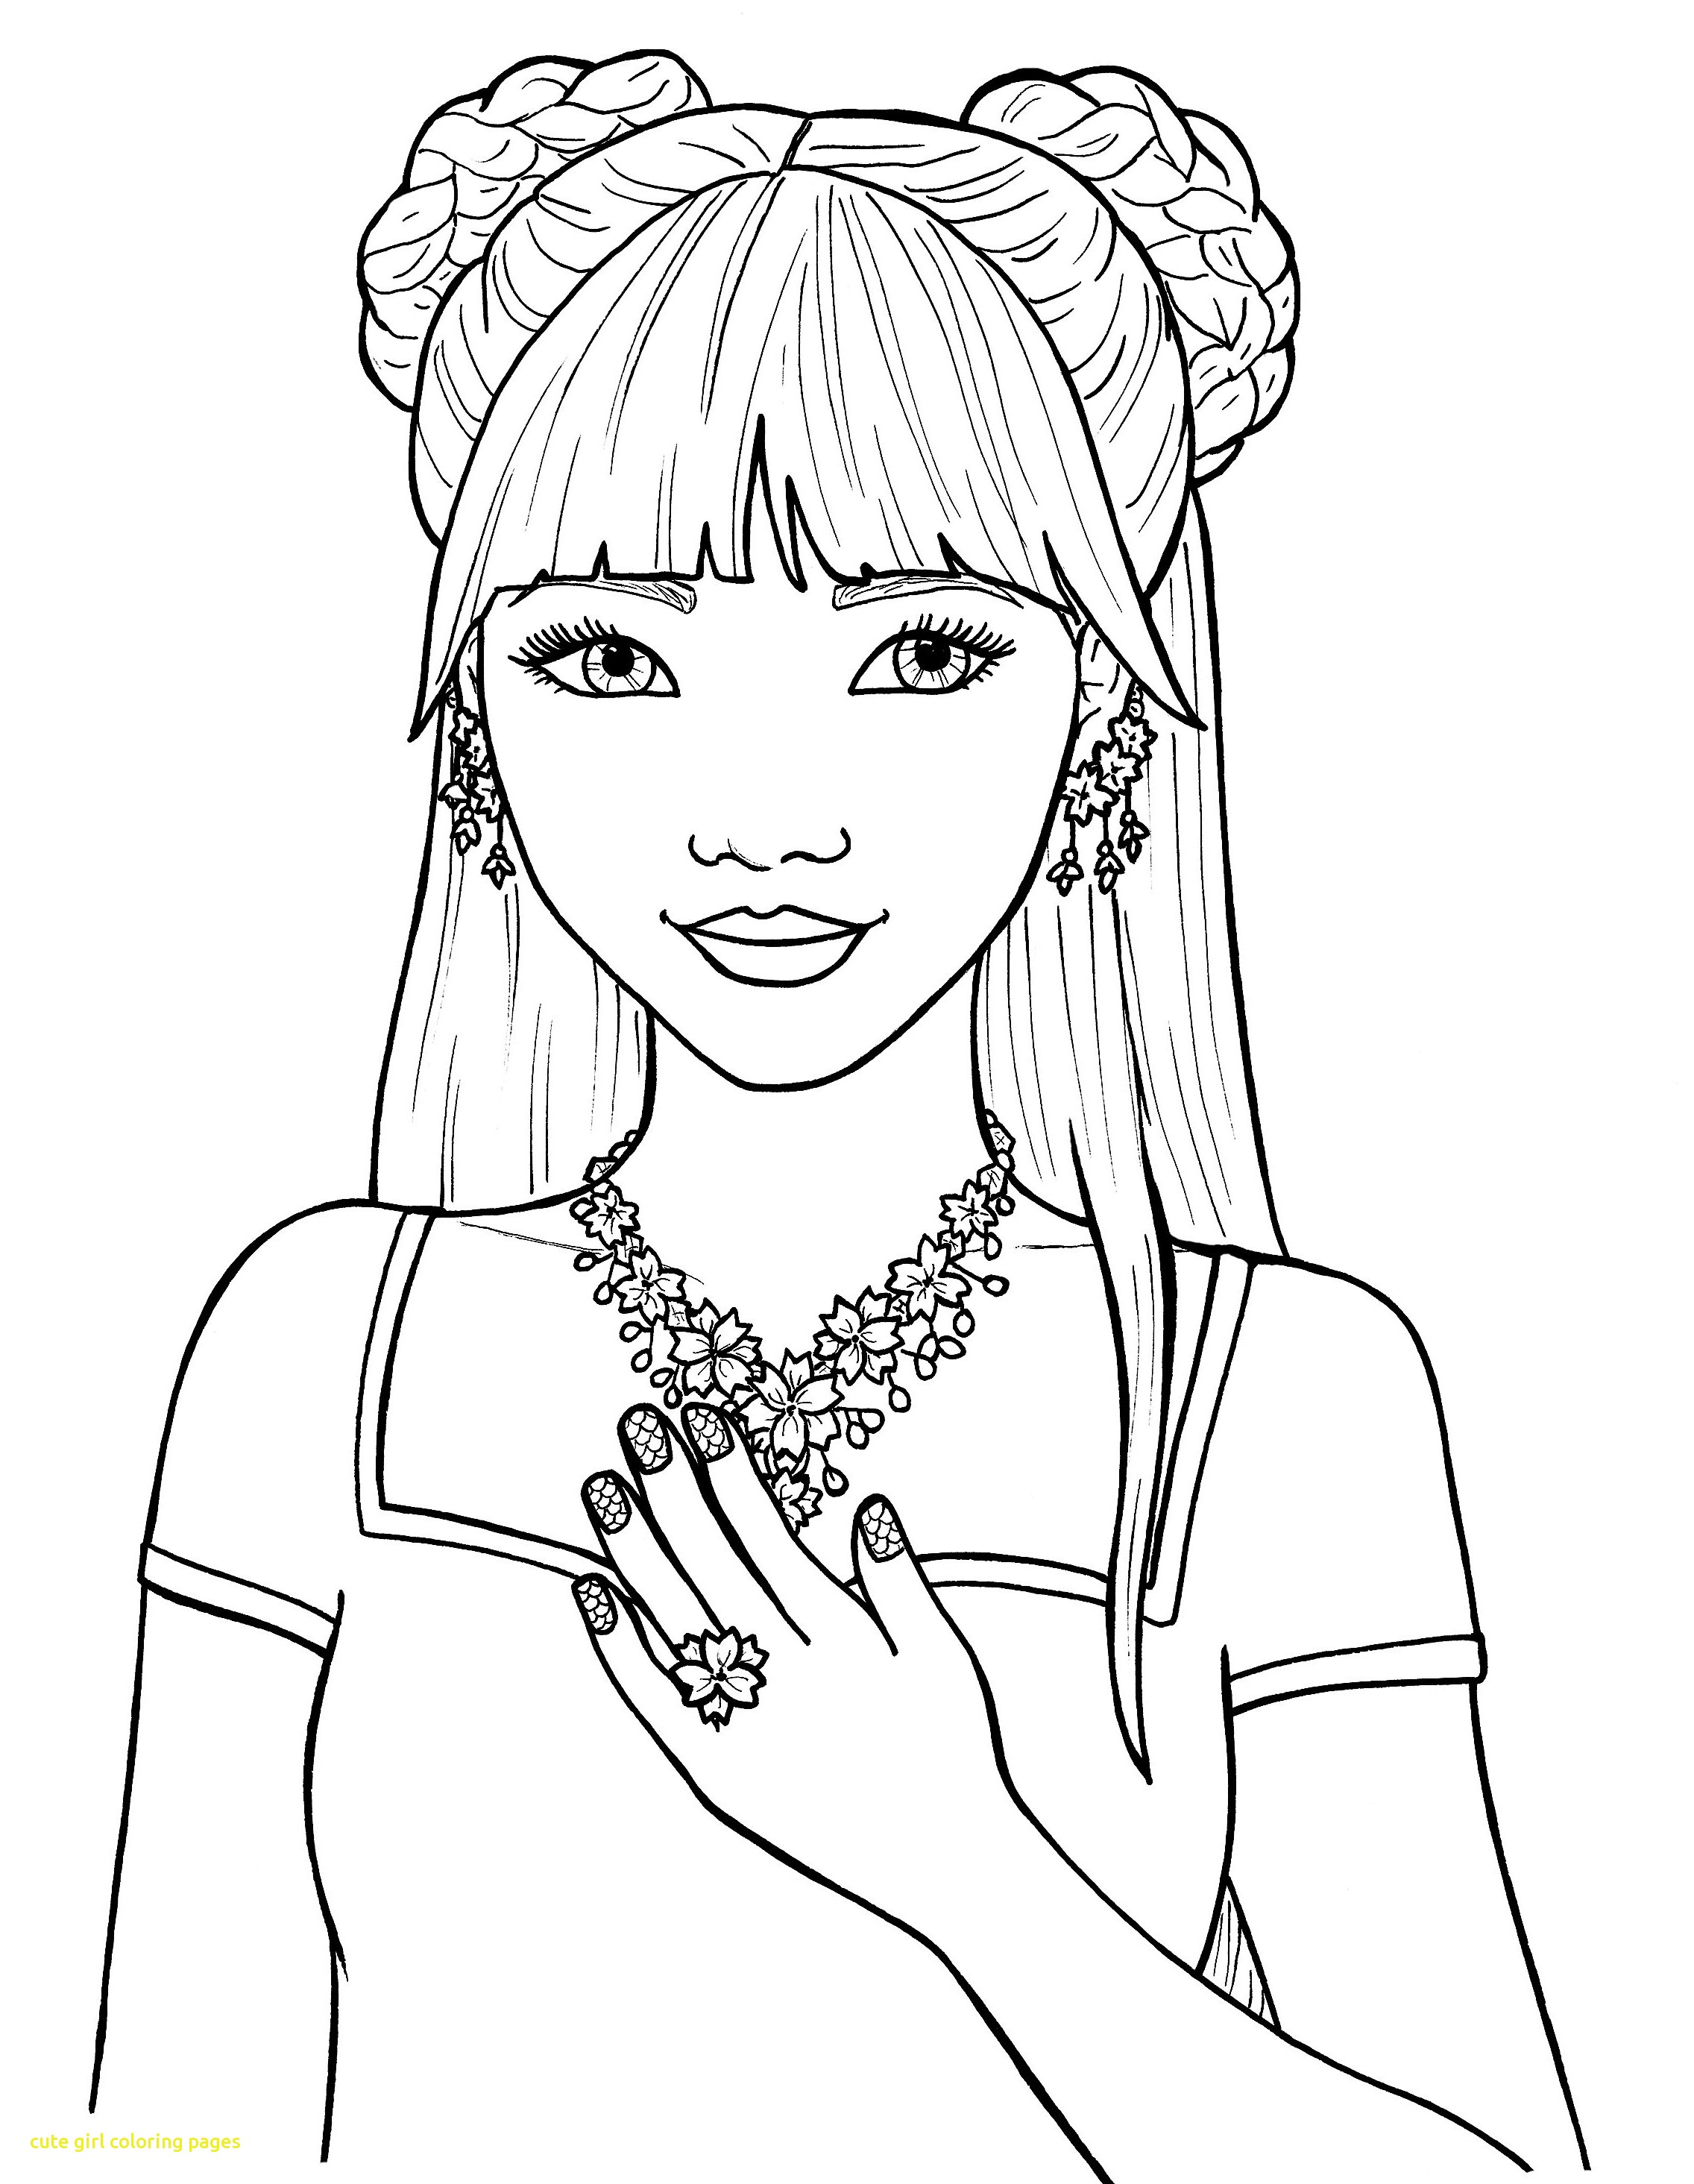 color pages online coloring pages for girls best coloring pages for kids online color pages